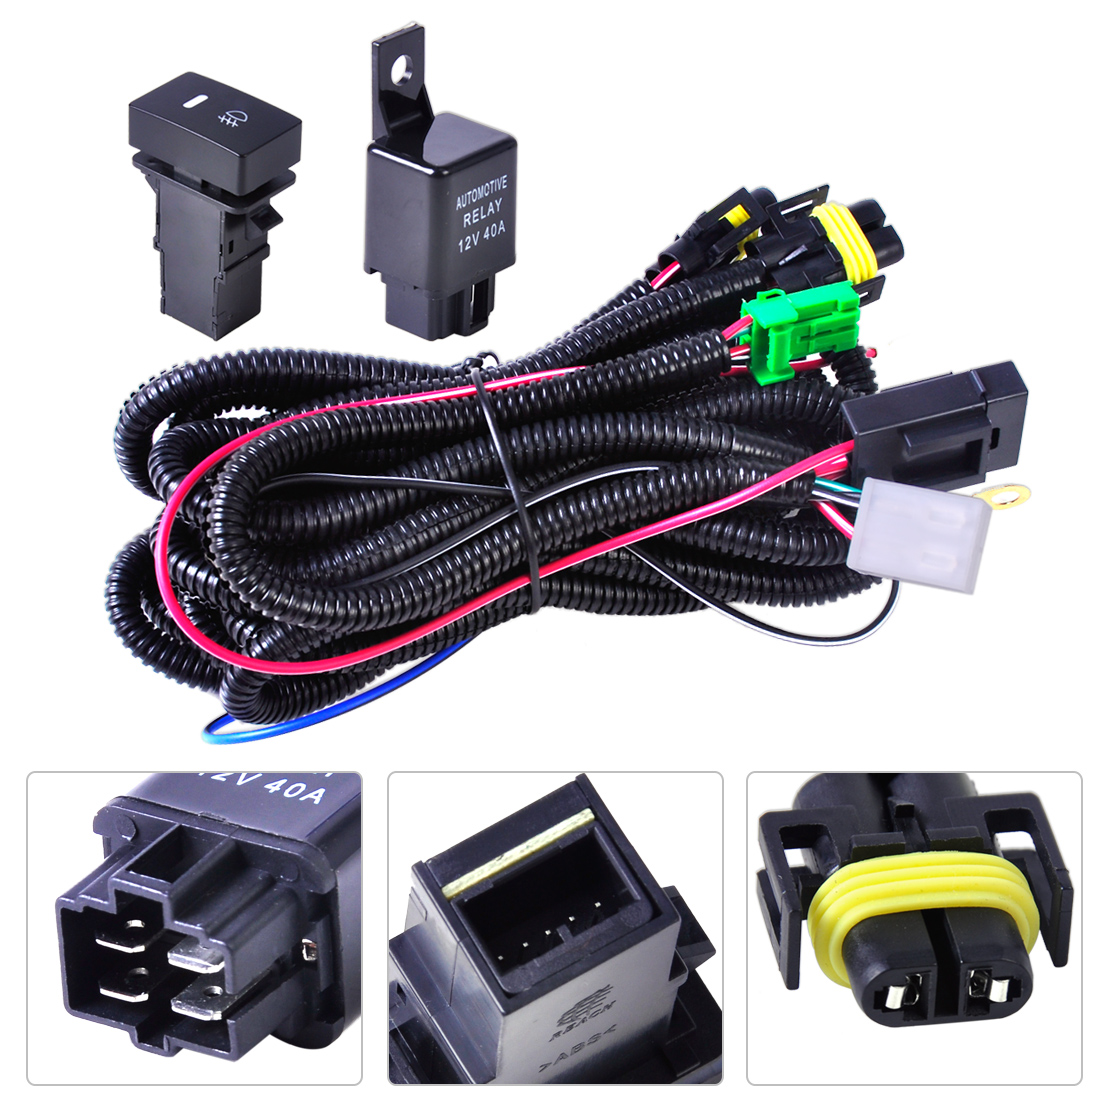 1 wiring harness sockets switch for h11 fog light lamp ford focus 2001 mustang fog light wiring harness at gsmportal.co